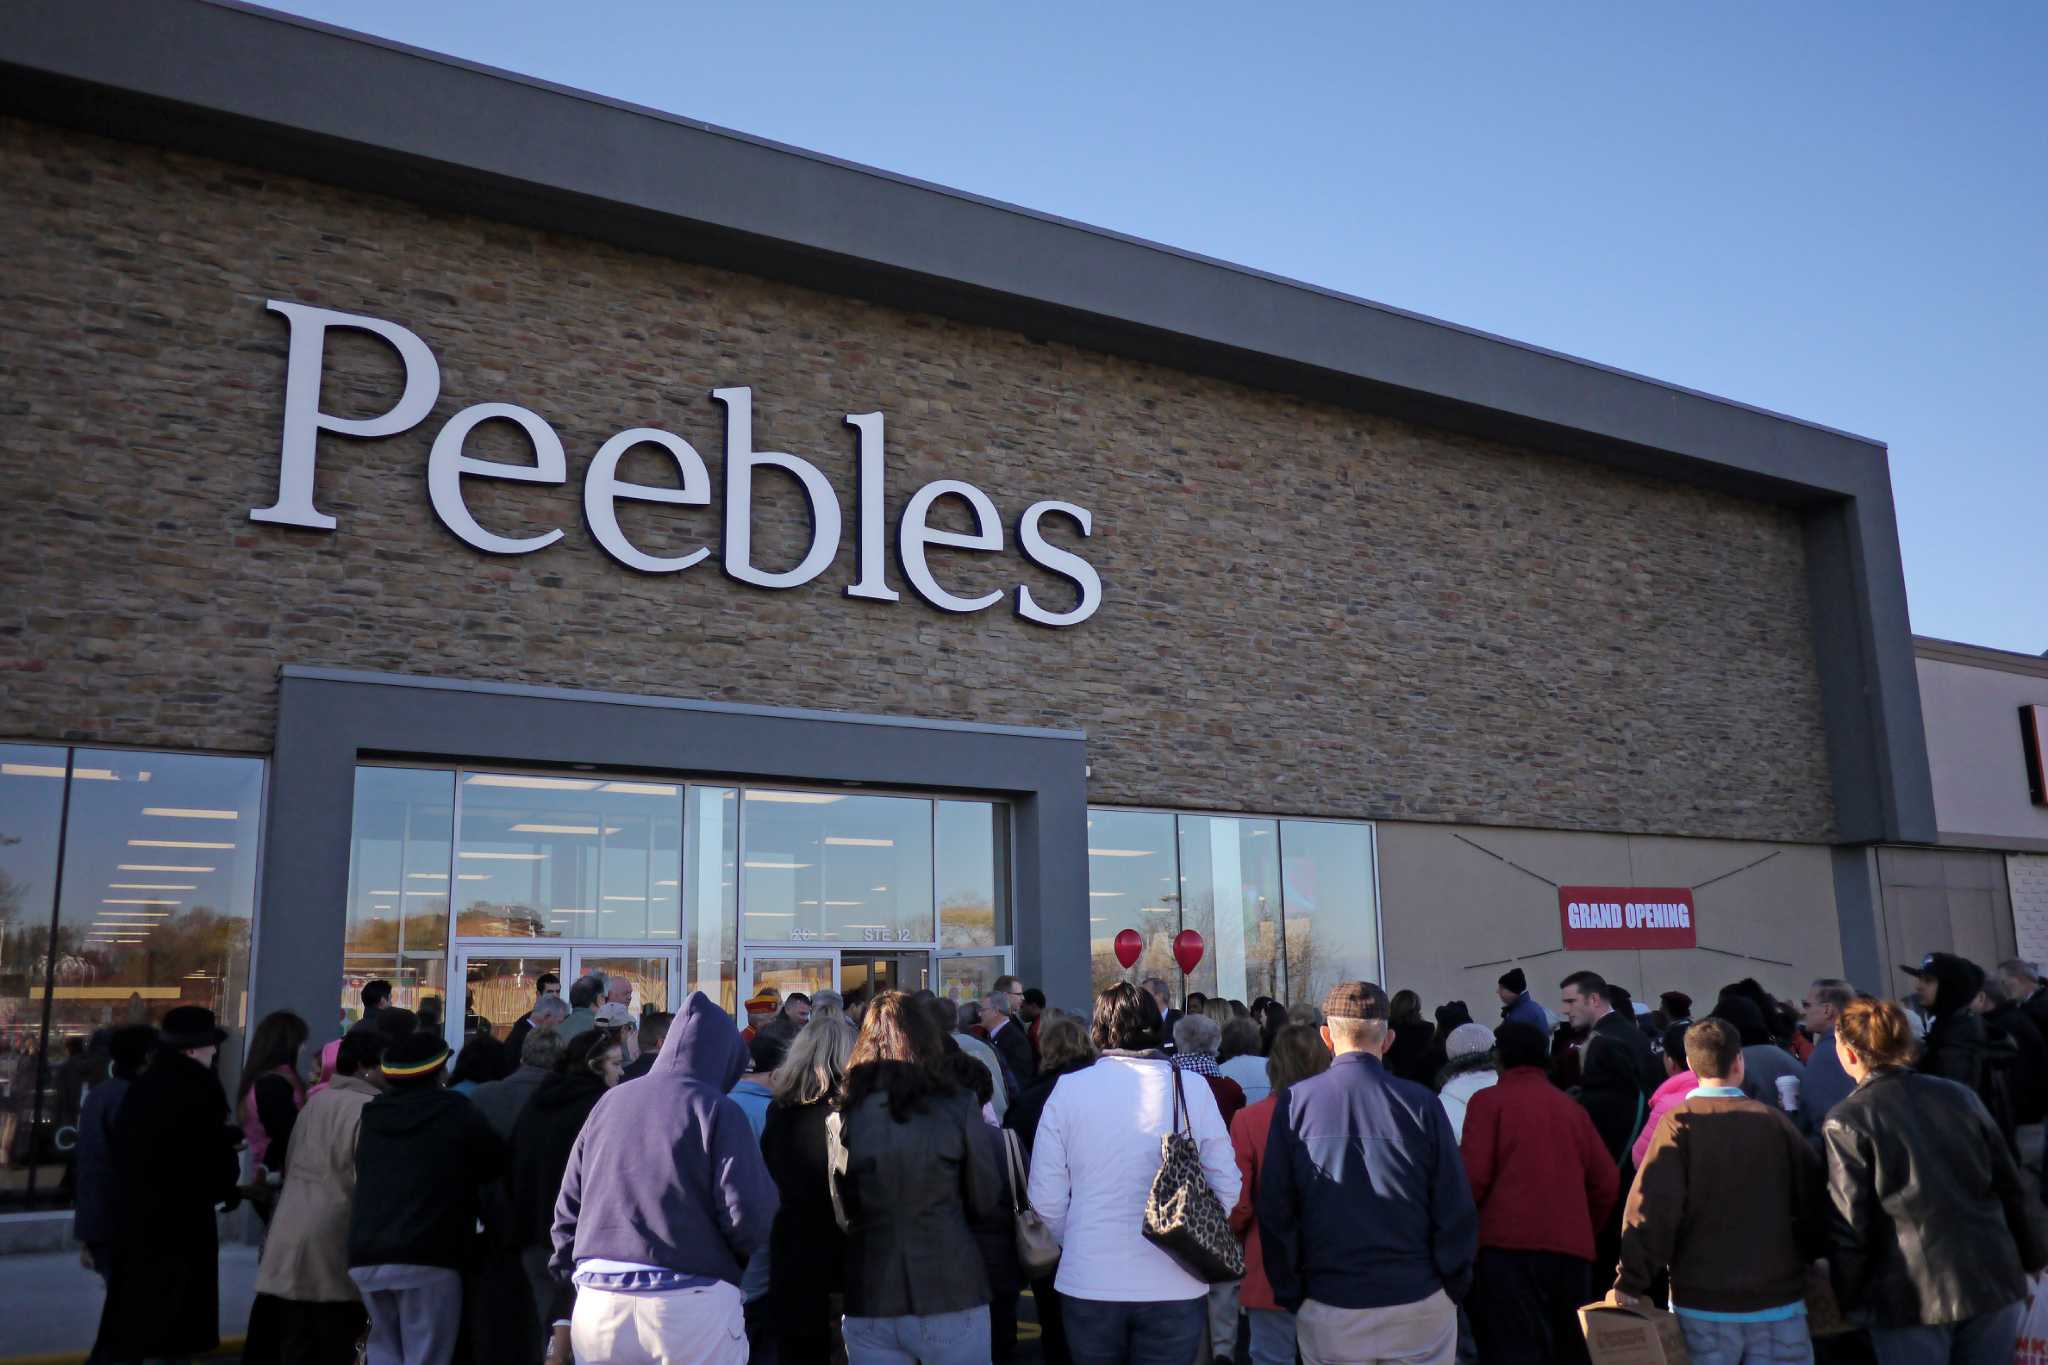 Peebles is a United States chain of department stores owned by Stage Stores, Inc. and headquartered in Houston, Texas.. Peebles operates stores mainly in the eastern.